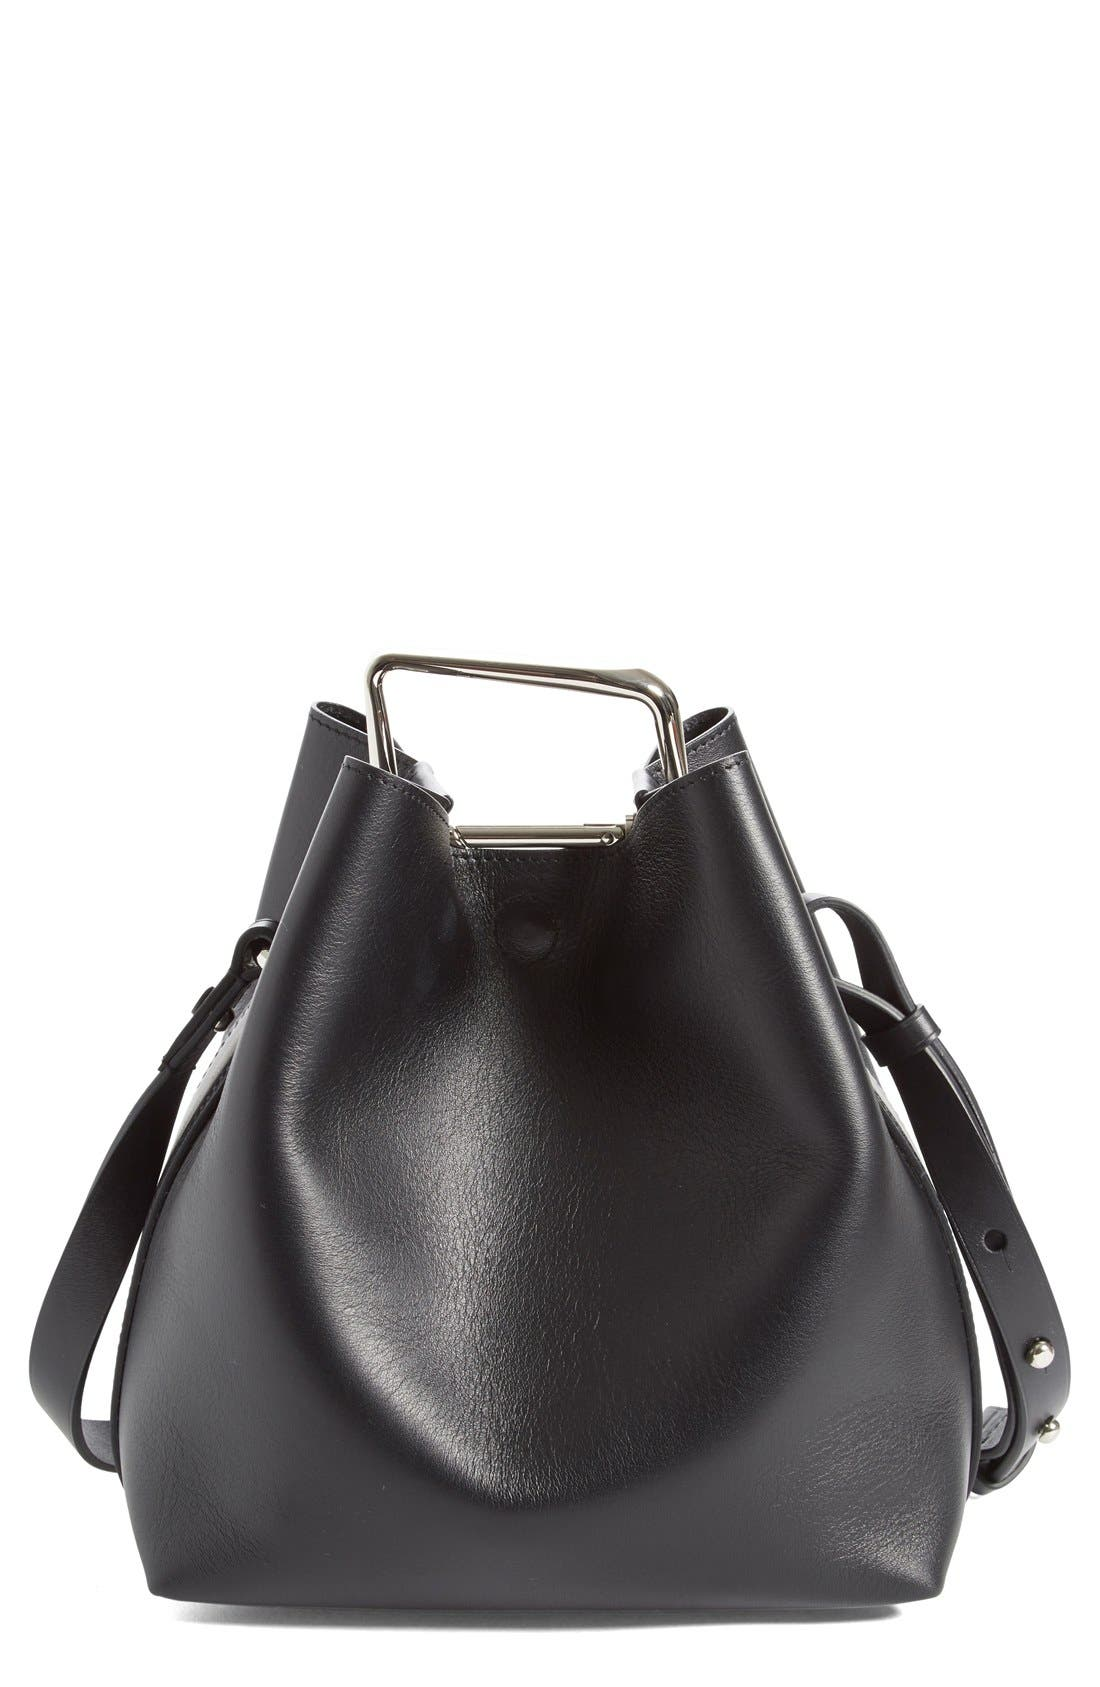 'Mini Quill' Leather Bucket Bag,                         Main,                         color, 011